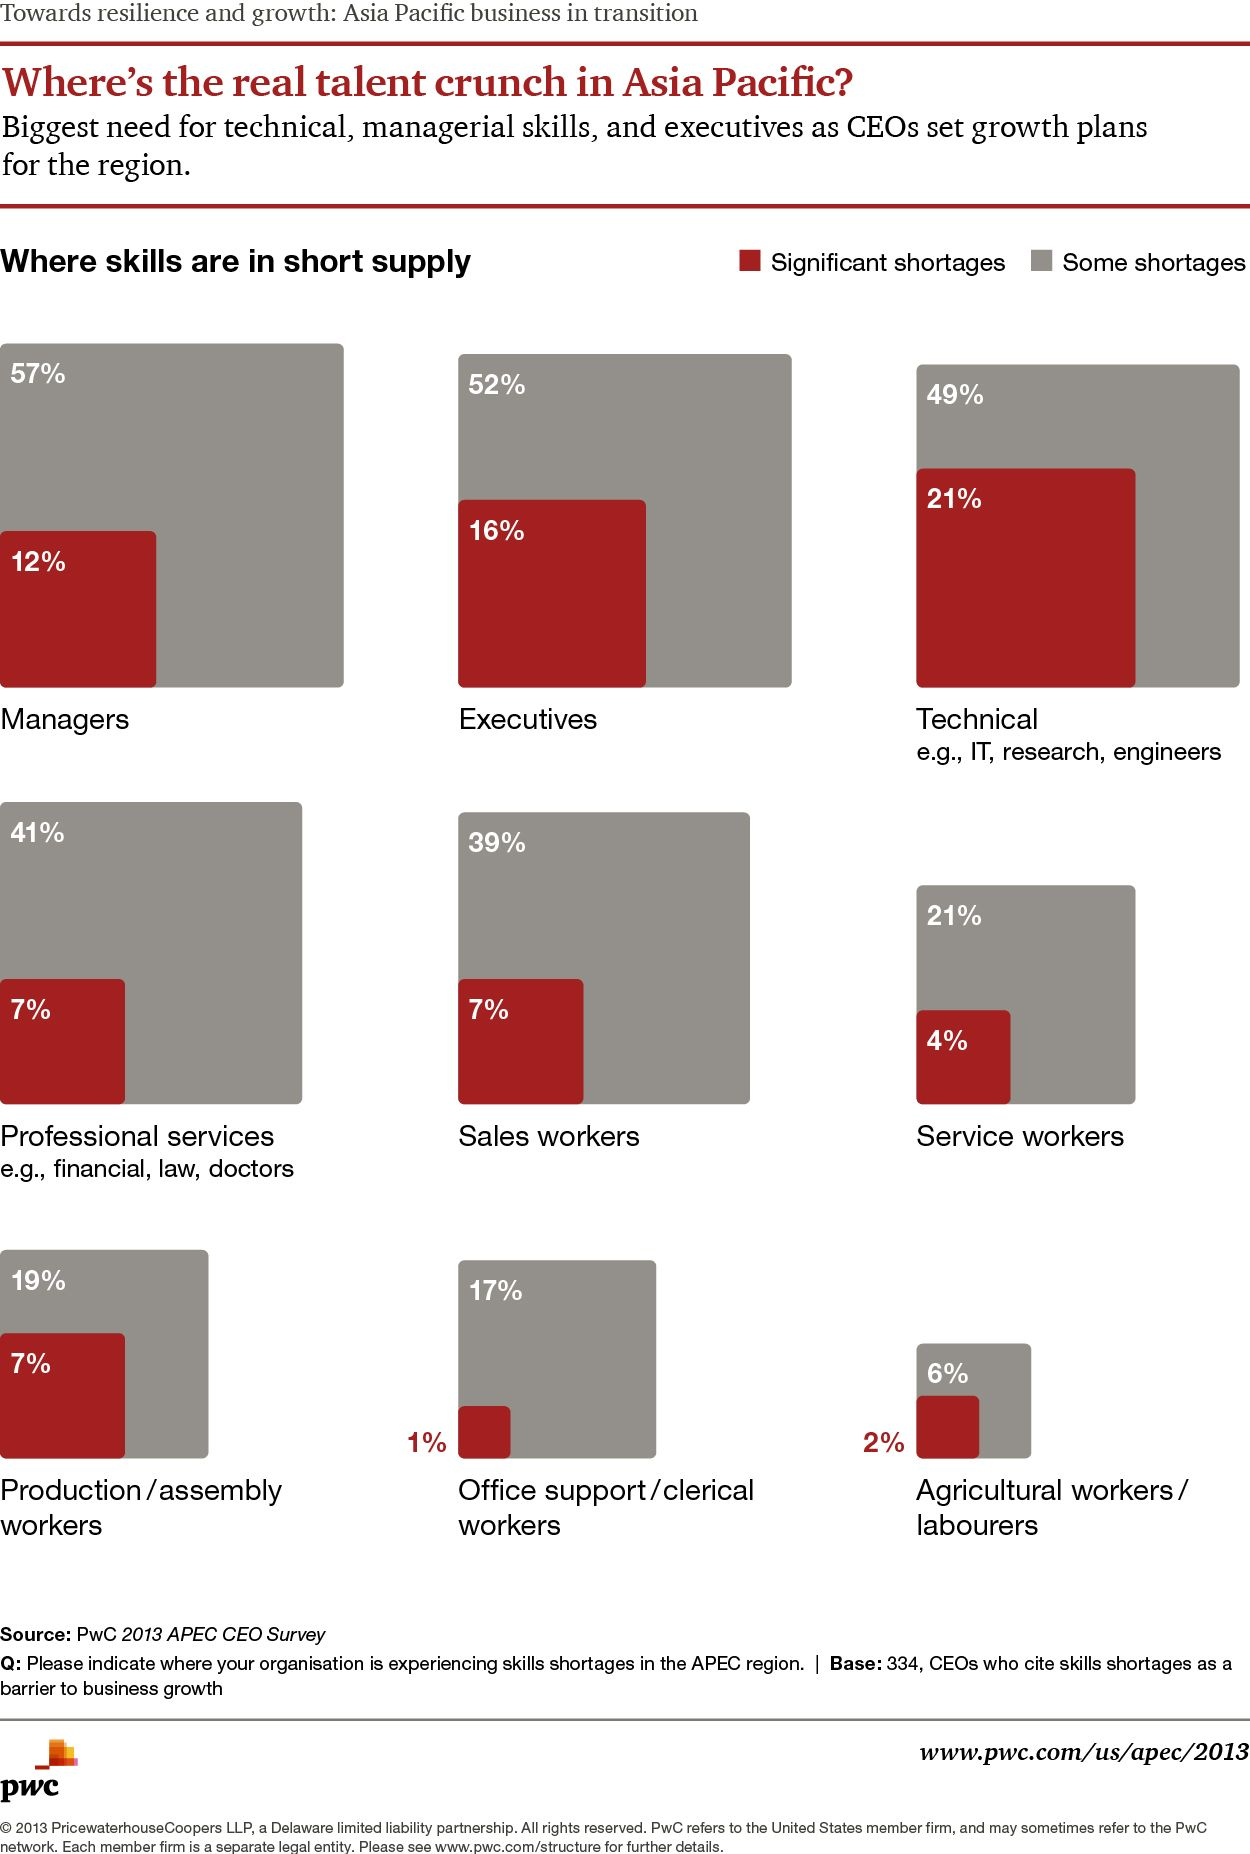 CEOs see biggest need for tech, managerial skills